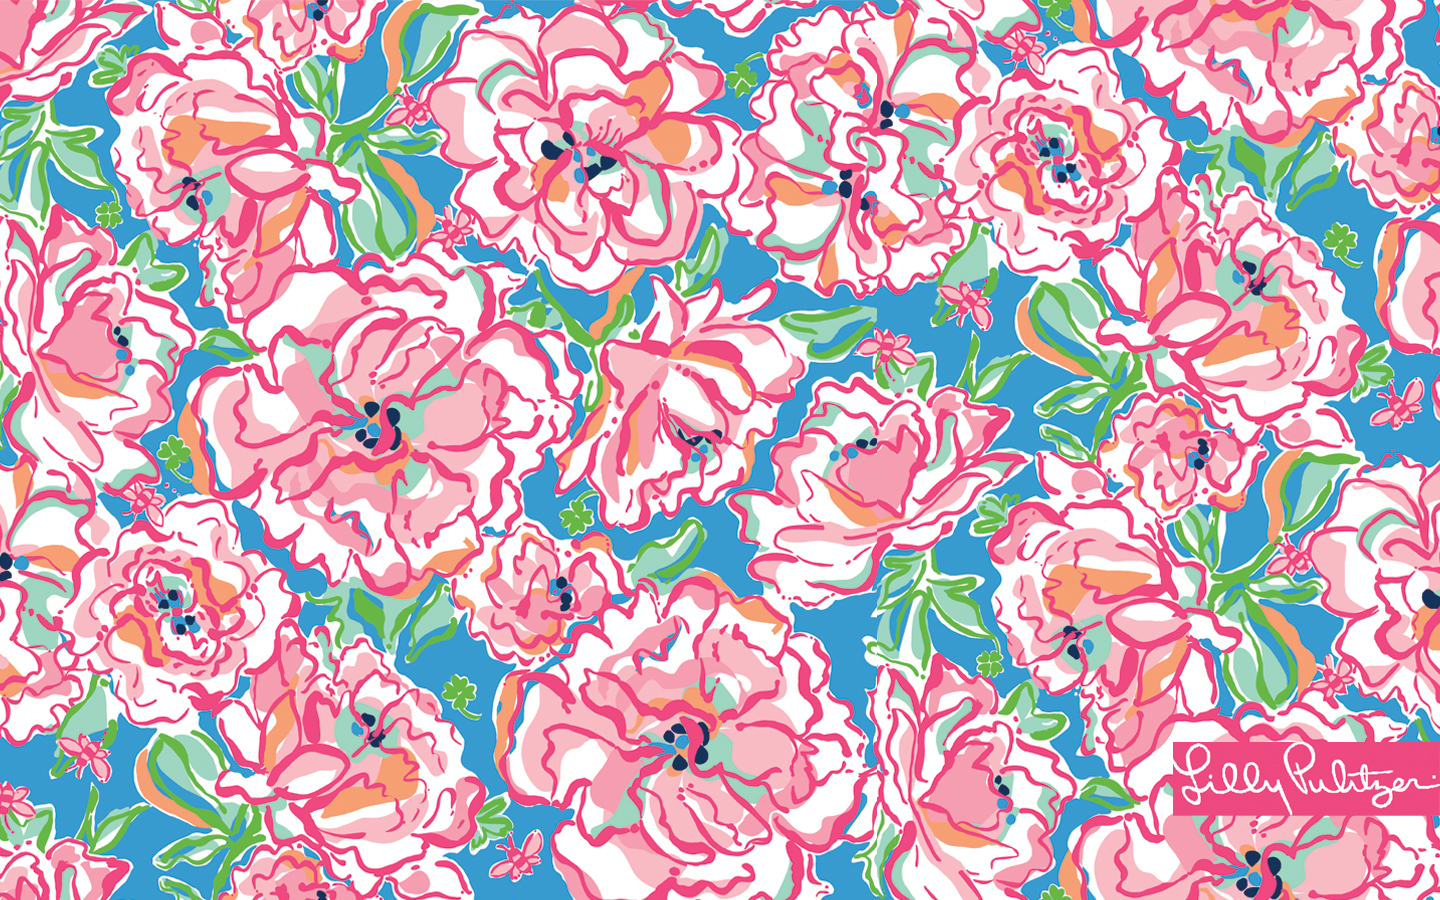 Lilly Pulitzer Prints Anchor Images Pictures   Becuo 1440x900